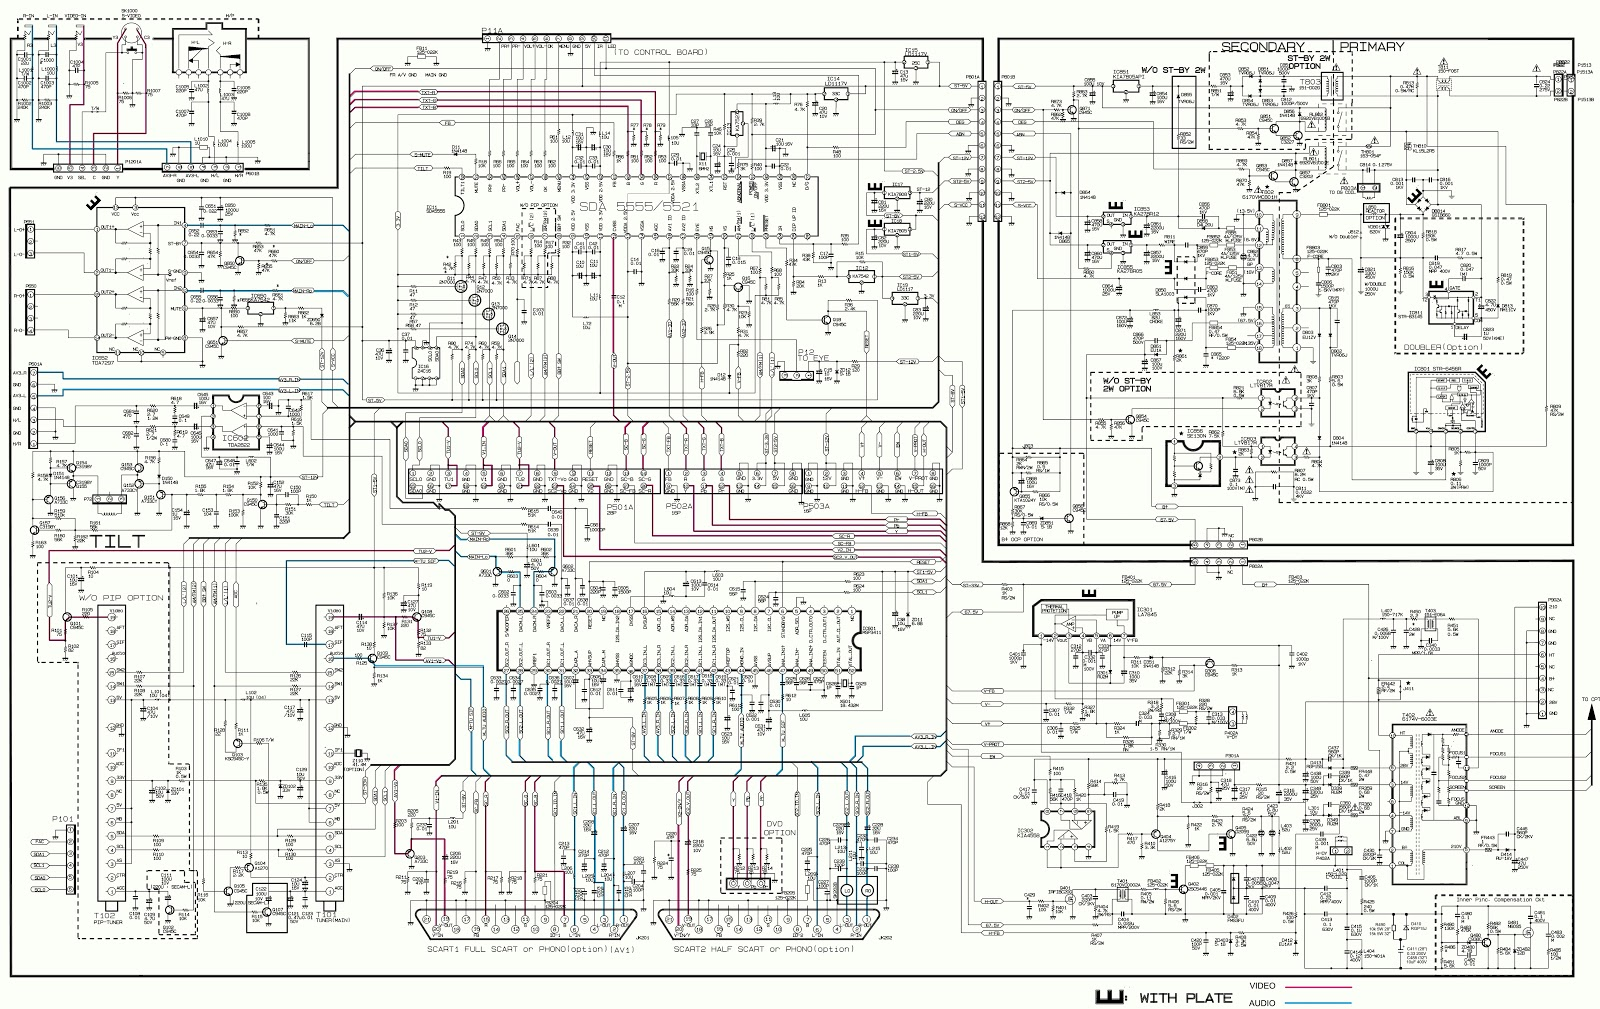 lg tv schematic wiring diagram wiring diagram paper lg dishwasher wiring diagram lg wiring diagram [ 1600 x 1009 Pixel ]